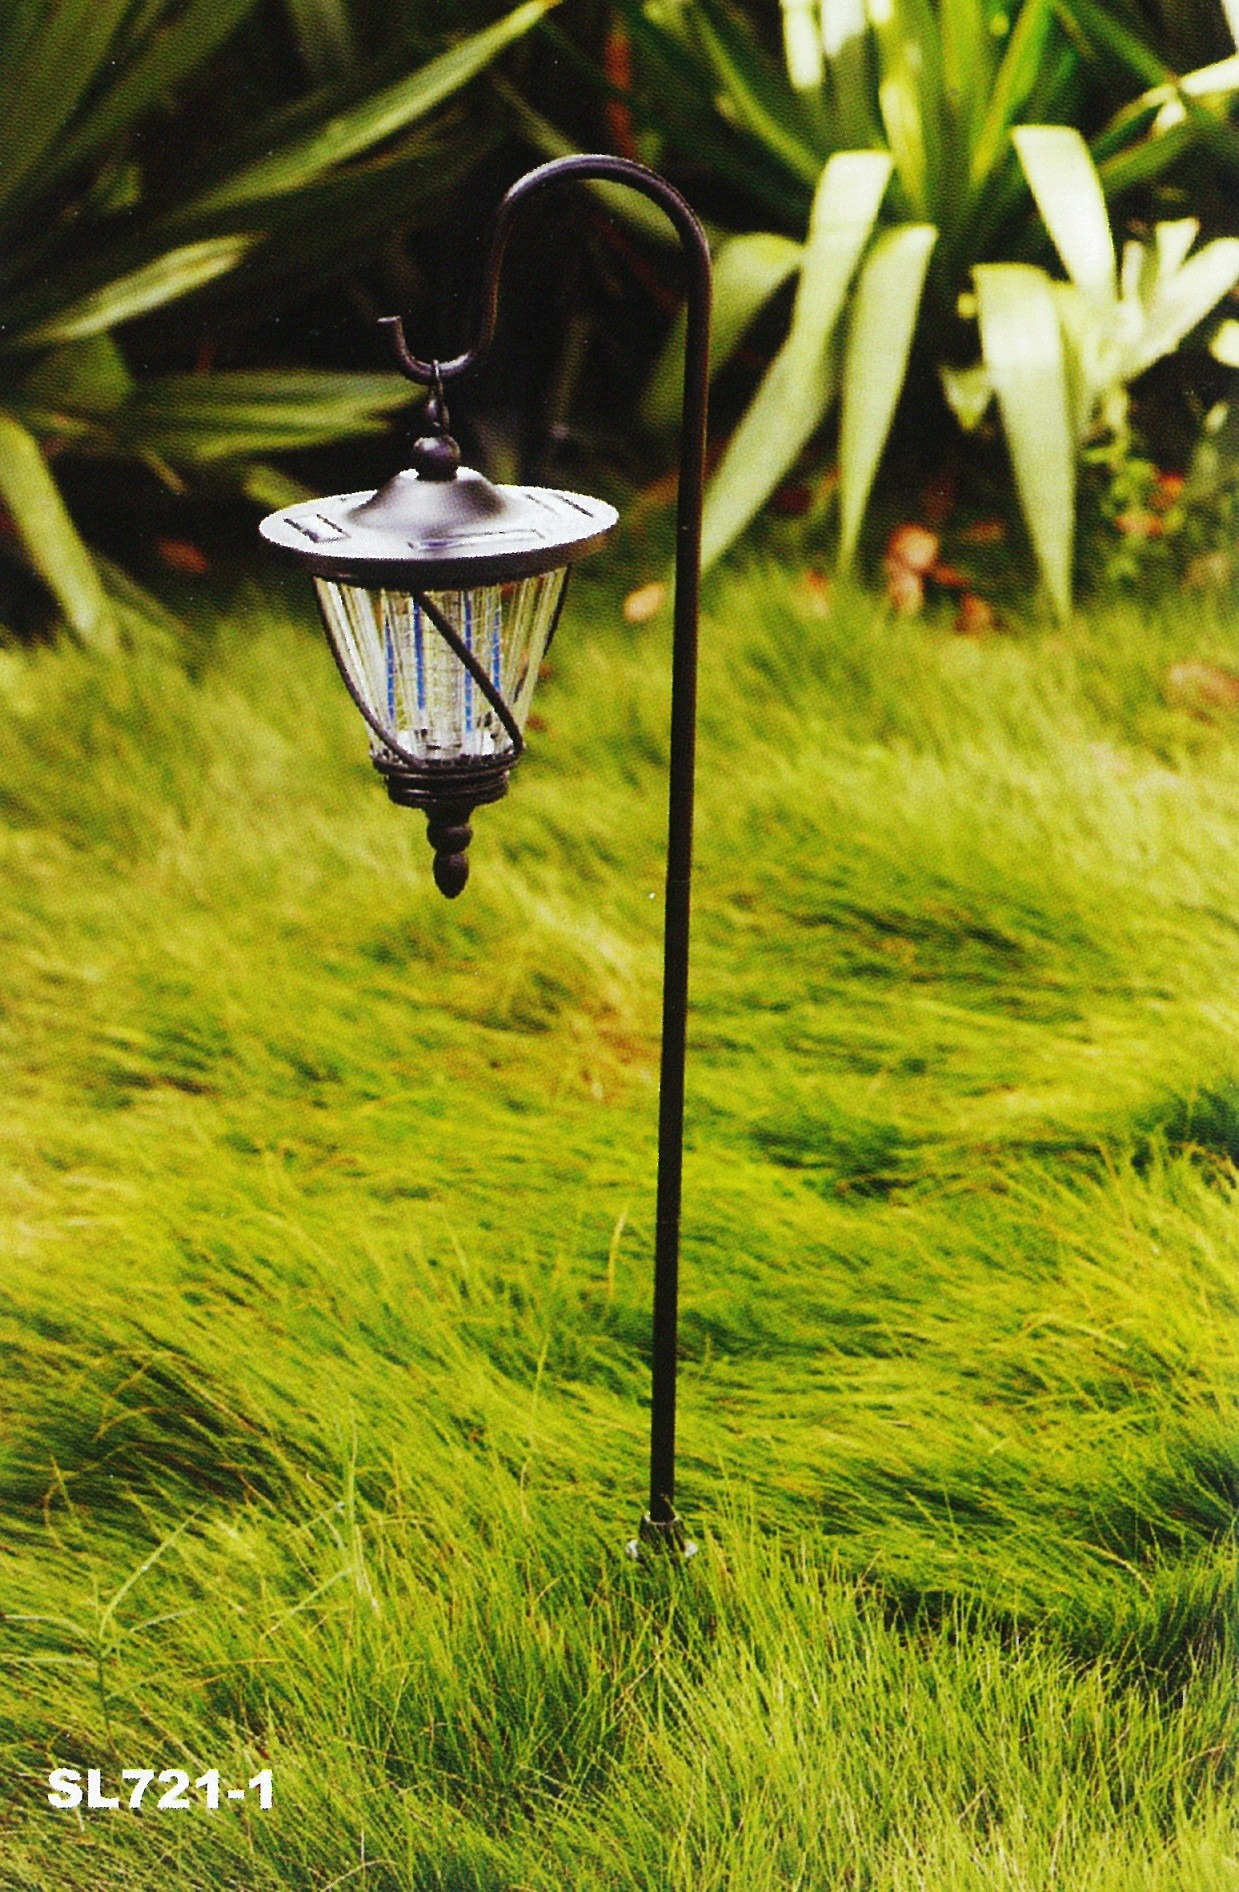 Solar lawn light  SL721-1